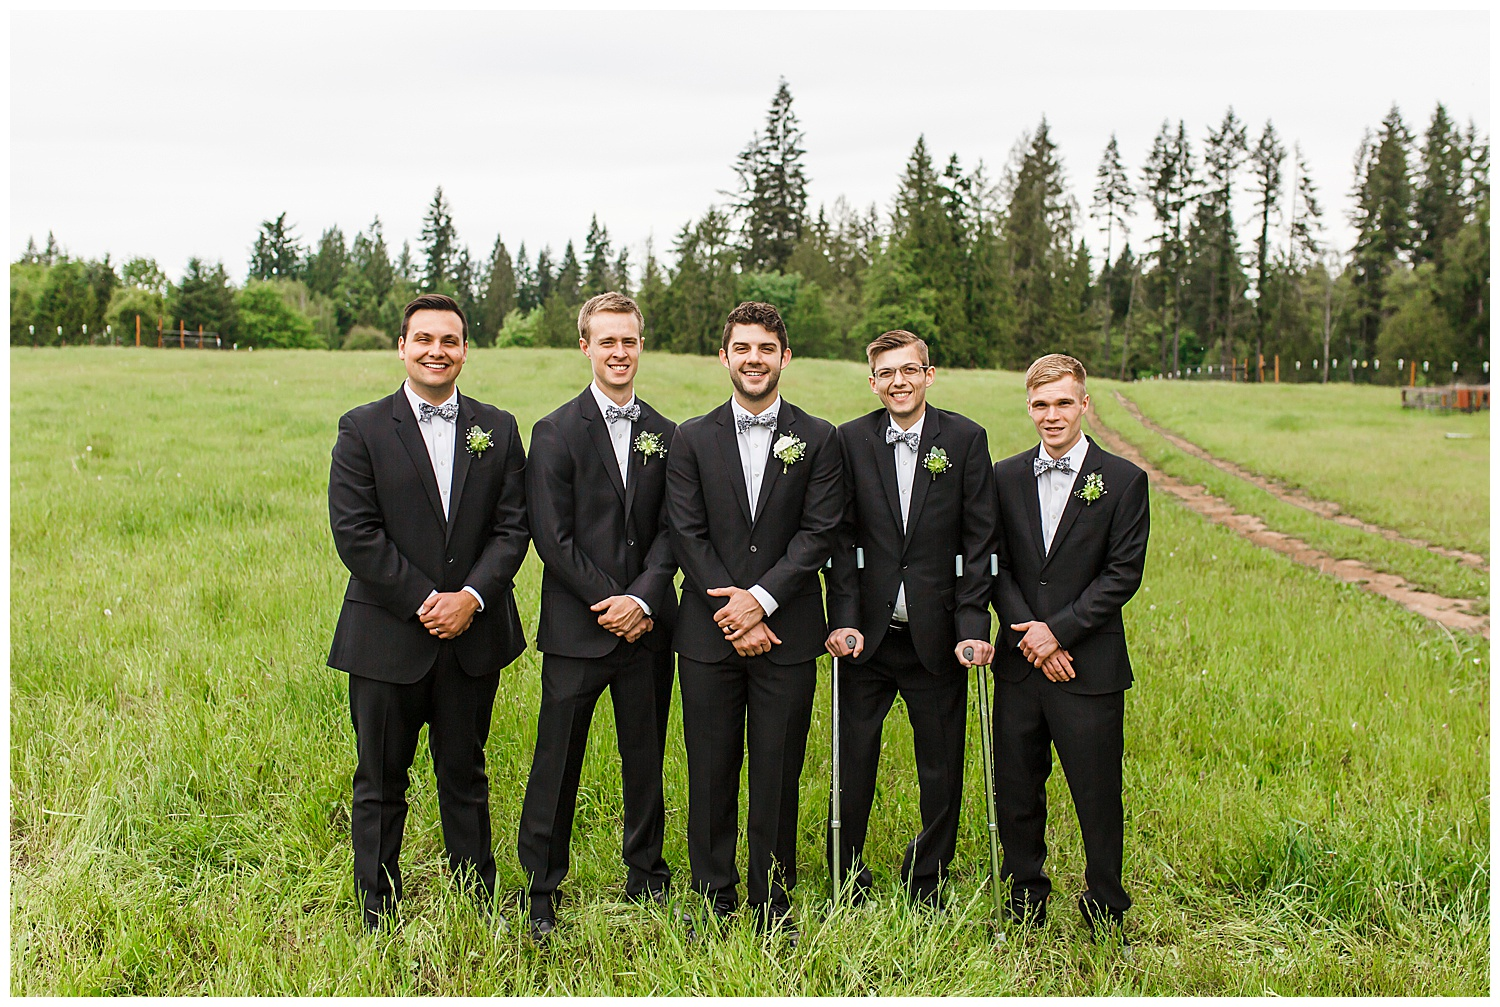 Brush_Prairie_Washington_Wedding_May_Farm_Backyard_Family_Photographer_Conzatti_0027.jpg